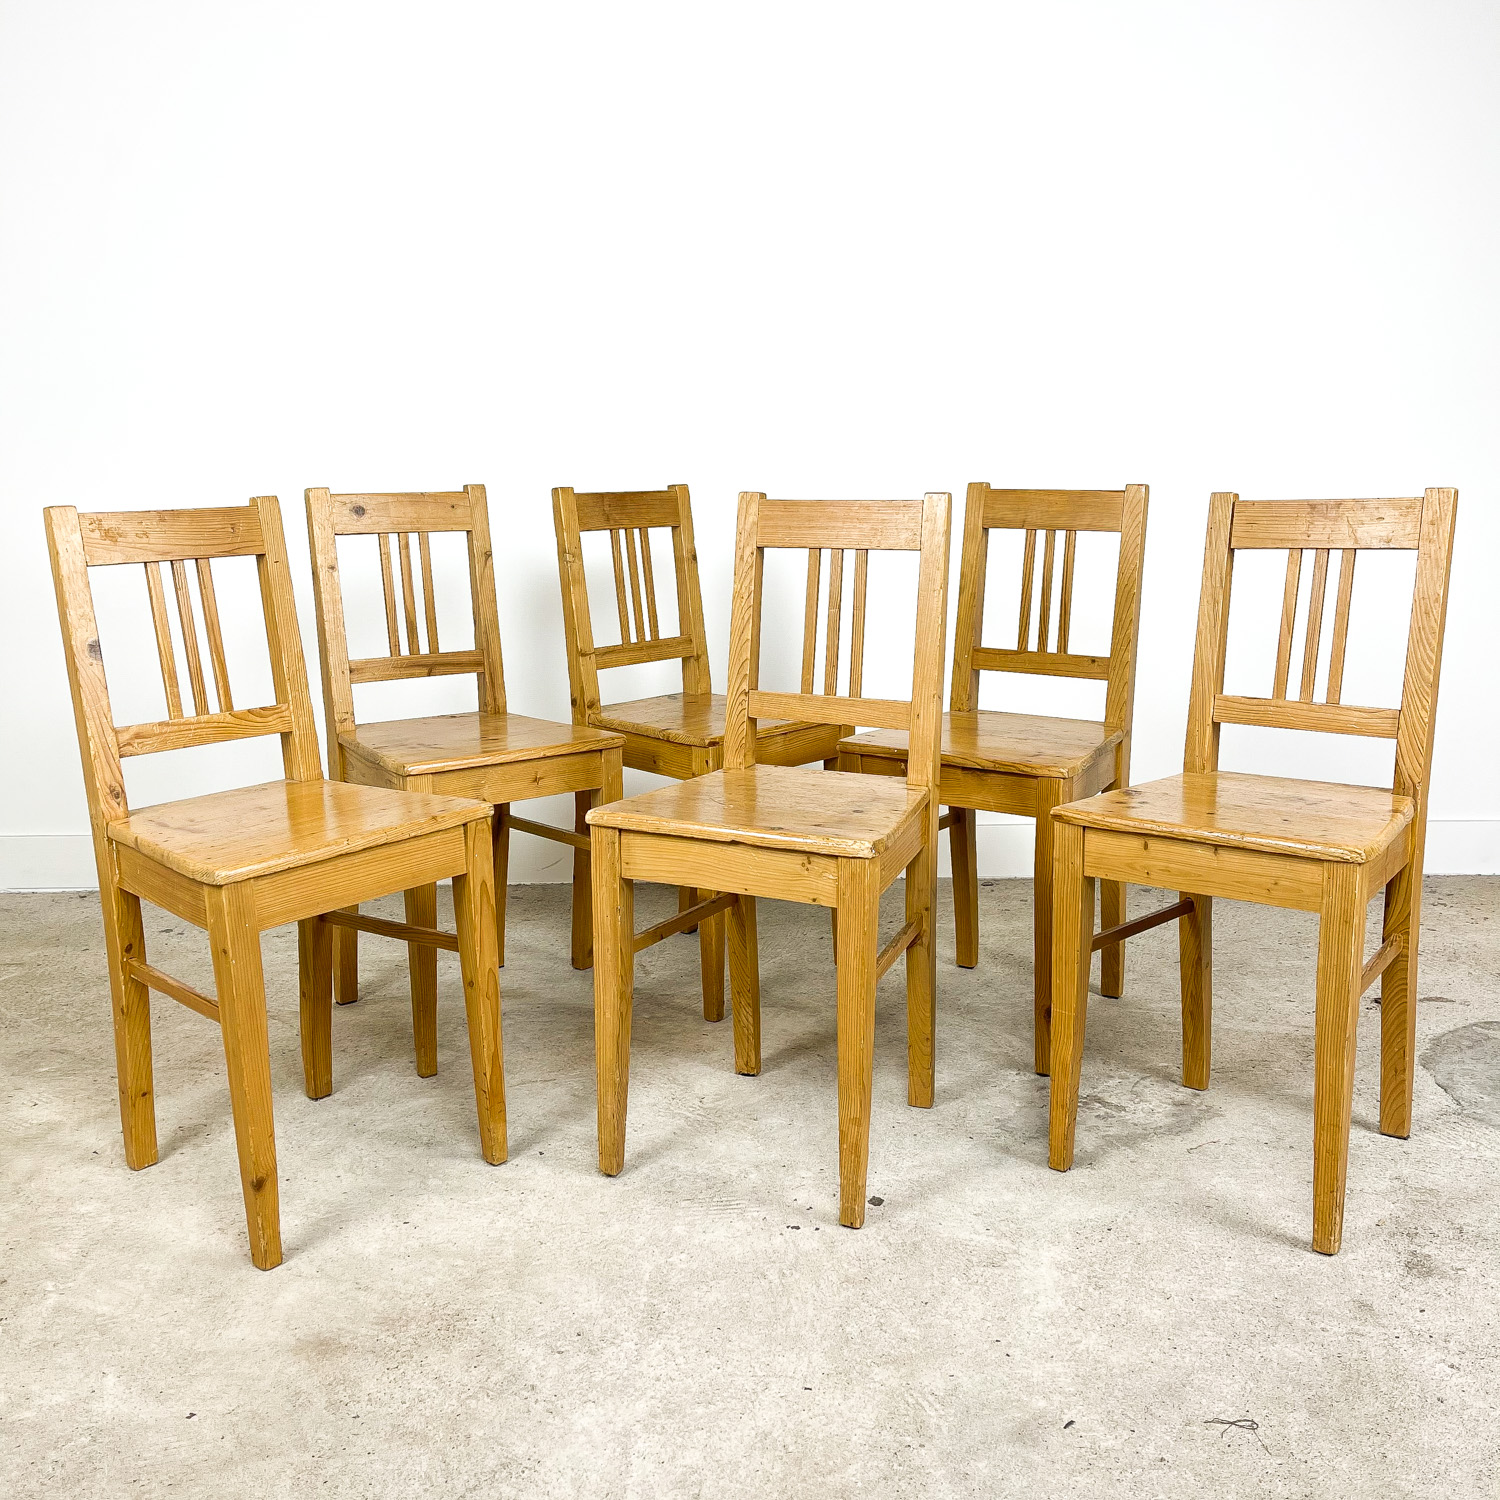 Set of 6 pine wooden farmhouse chairs